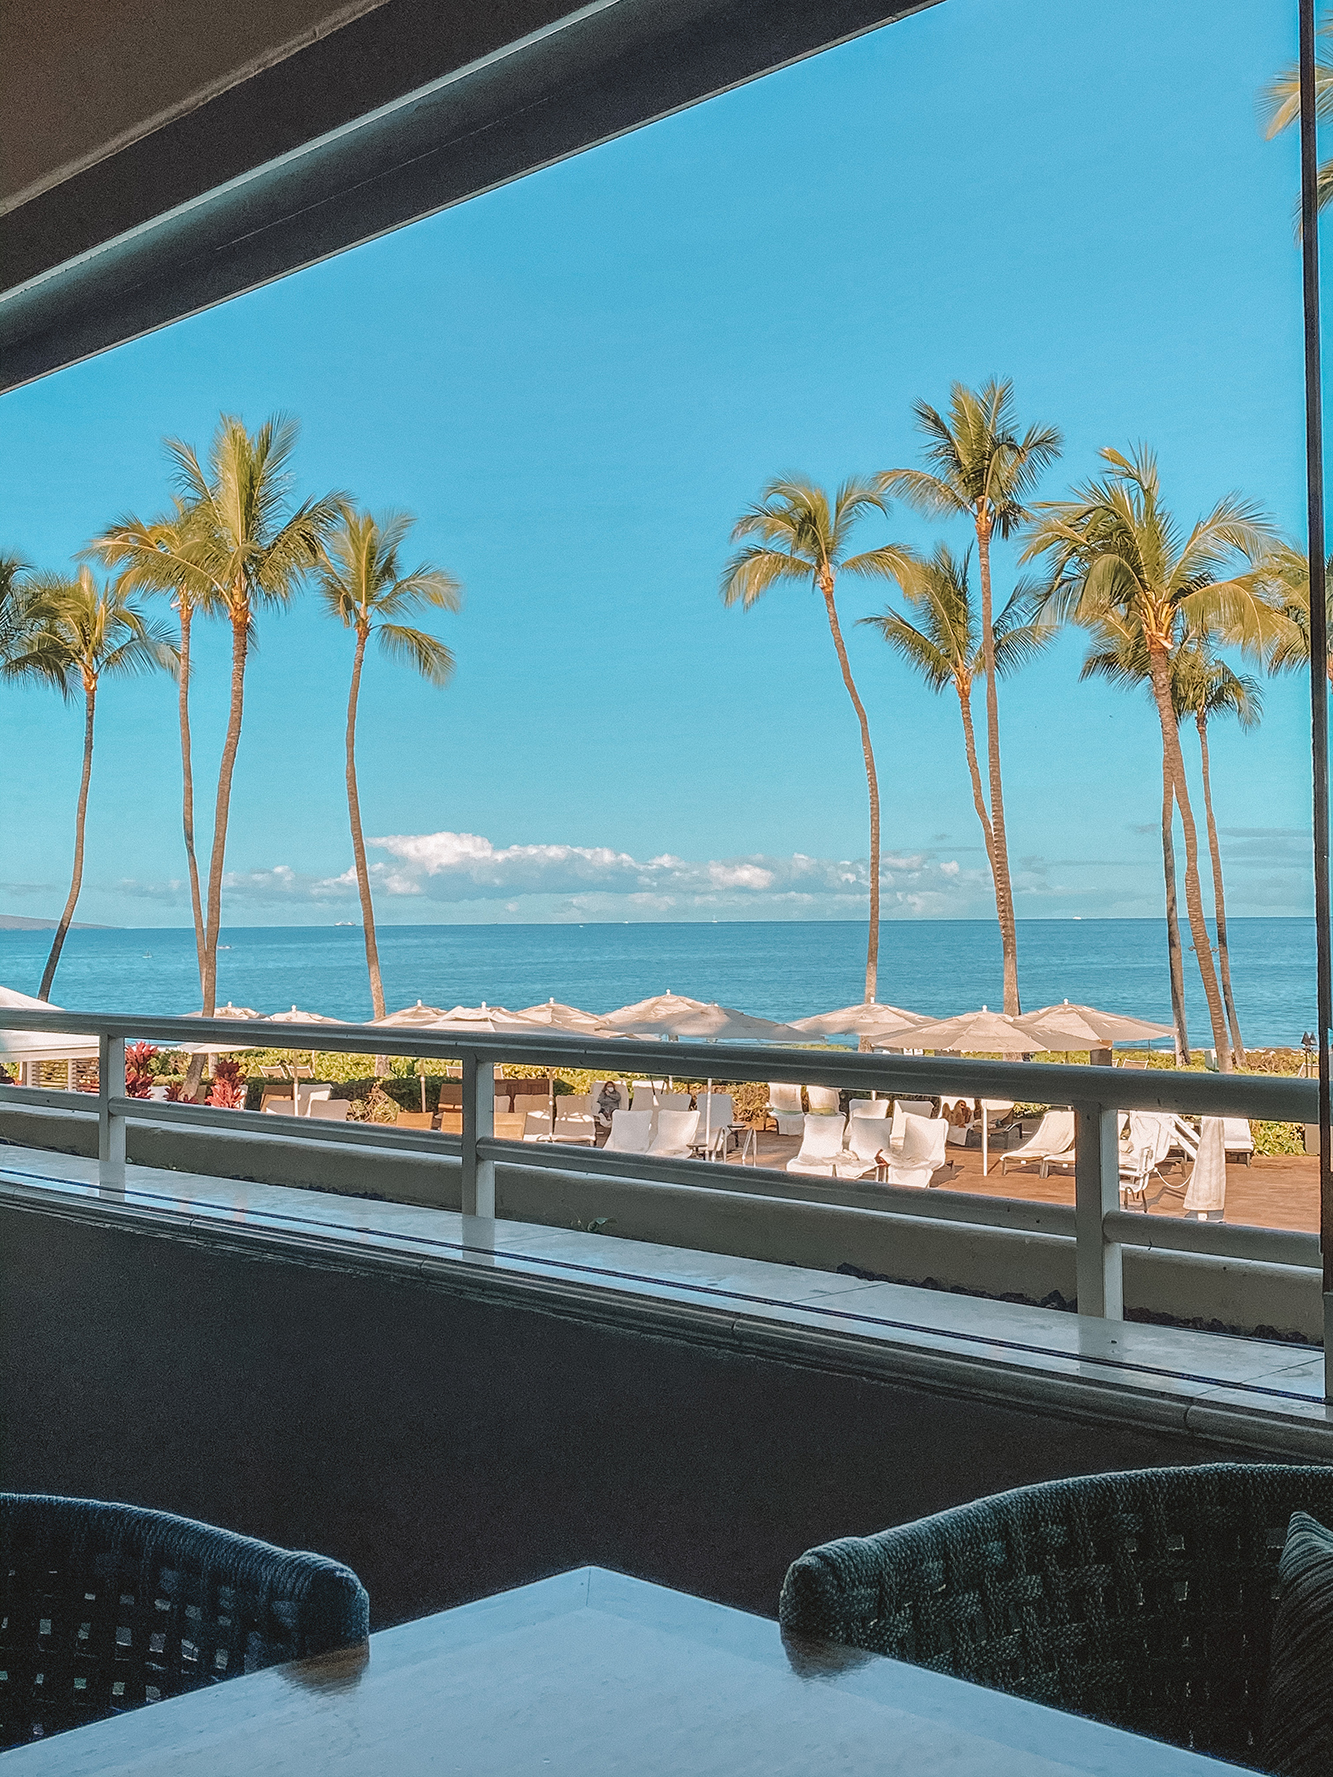 Maui Travel Guide 2021 - Where to stay, eat and play.. plus planning for COVID regulations and restrictions. How to book your maui trip